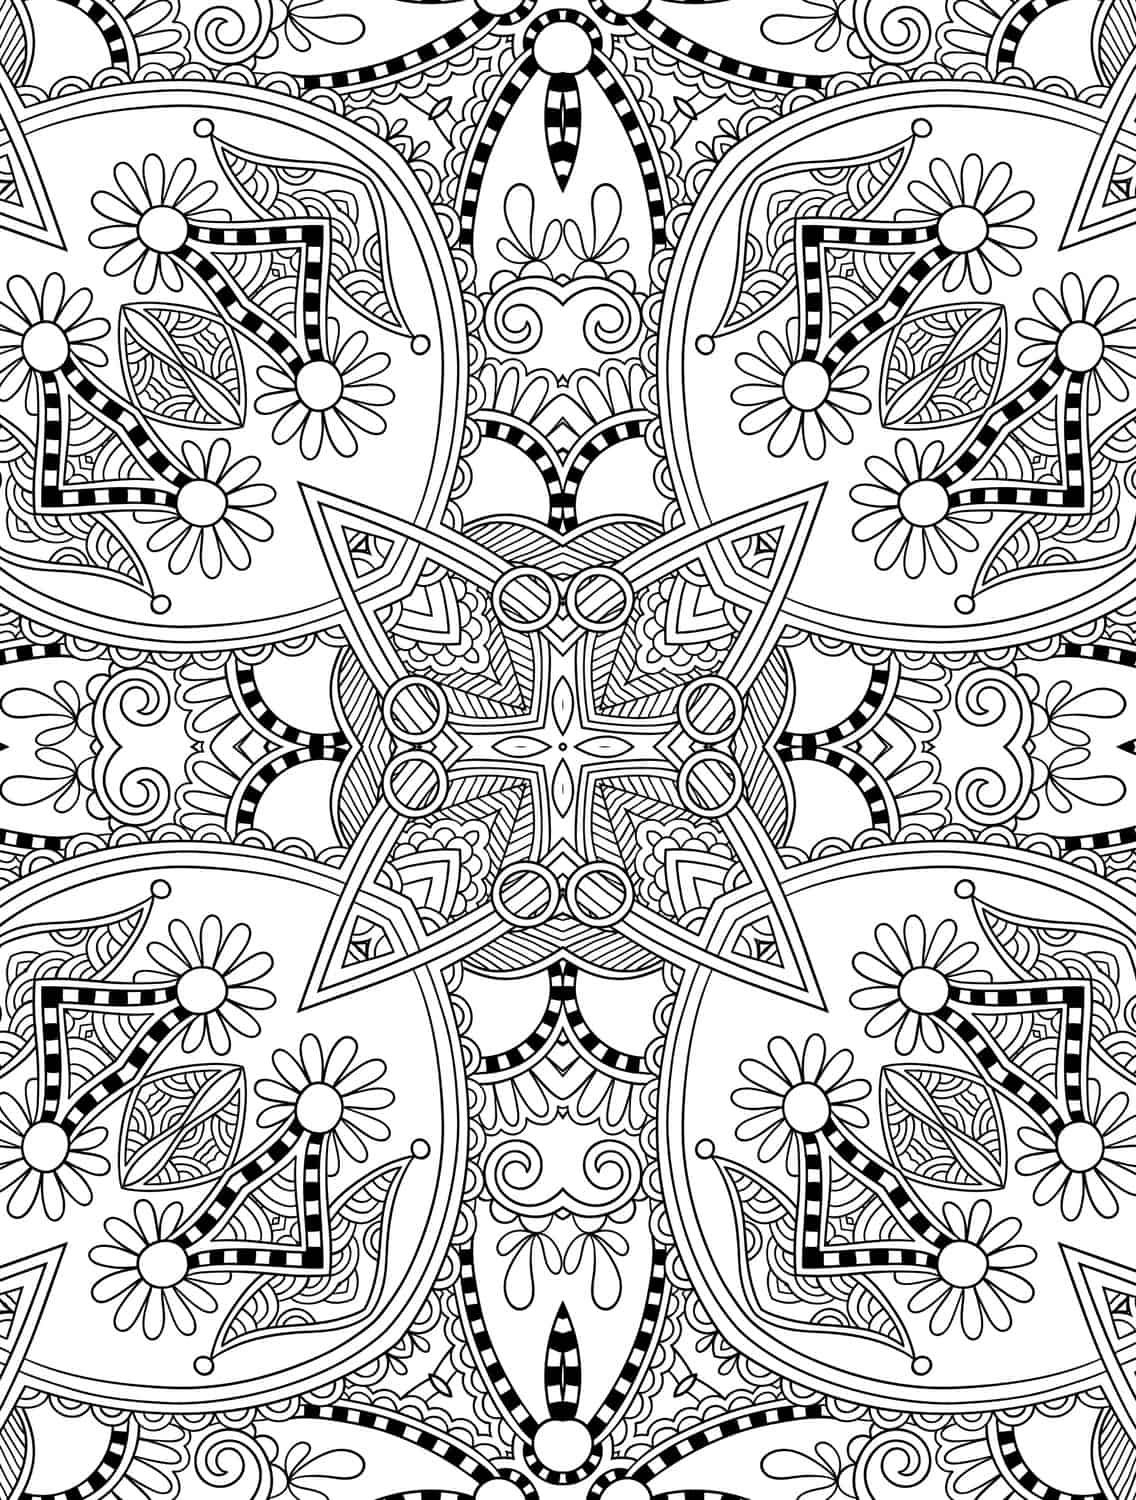 coloring book for adults 10 free printable holiday adult coloring pages book coloring for adults